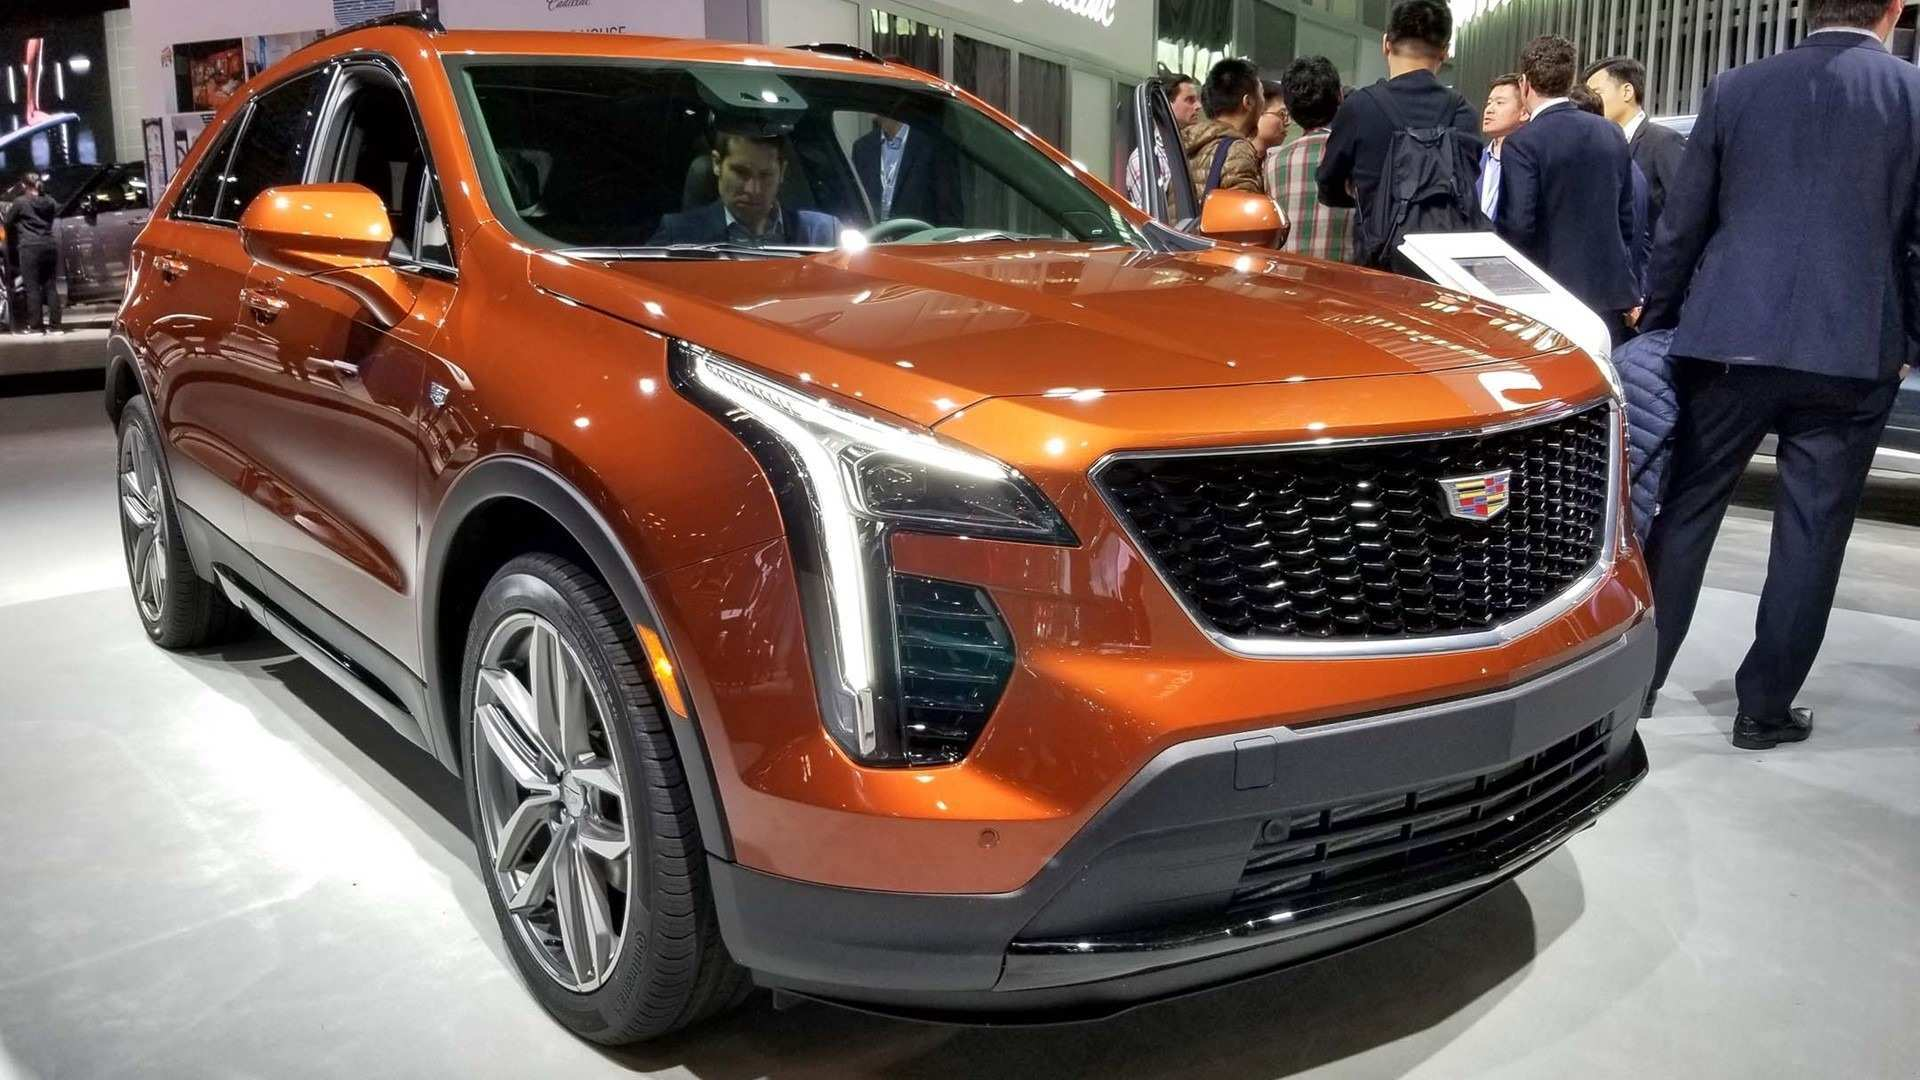 72 New 2019 Cadillac Srx Price Price and Review by 2019 Cadillac Srx Price